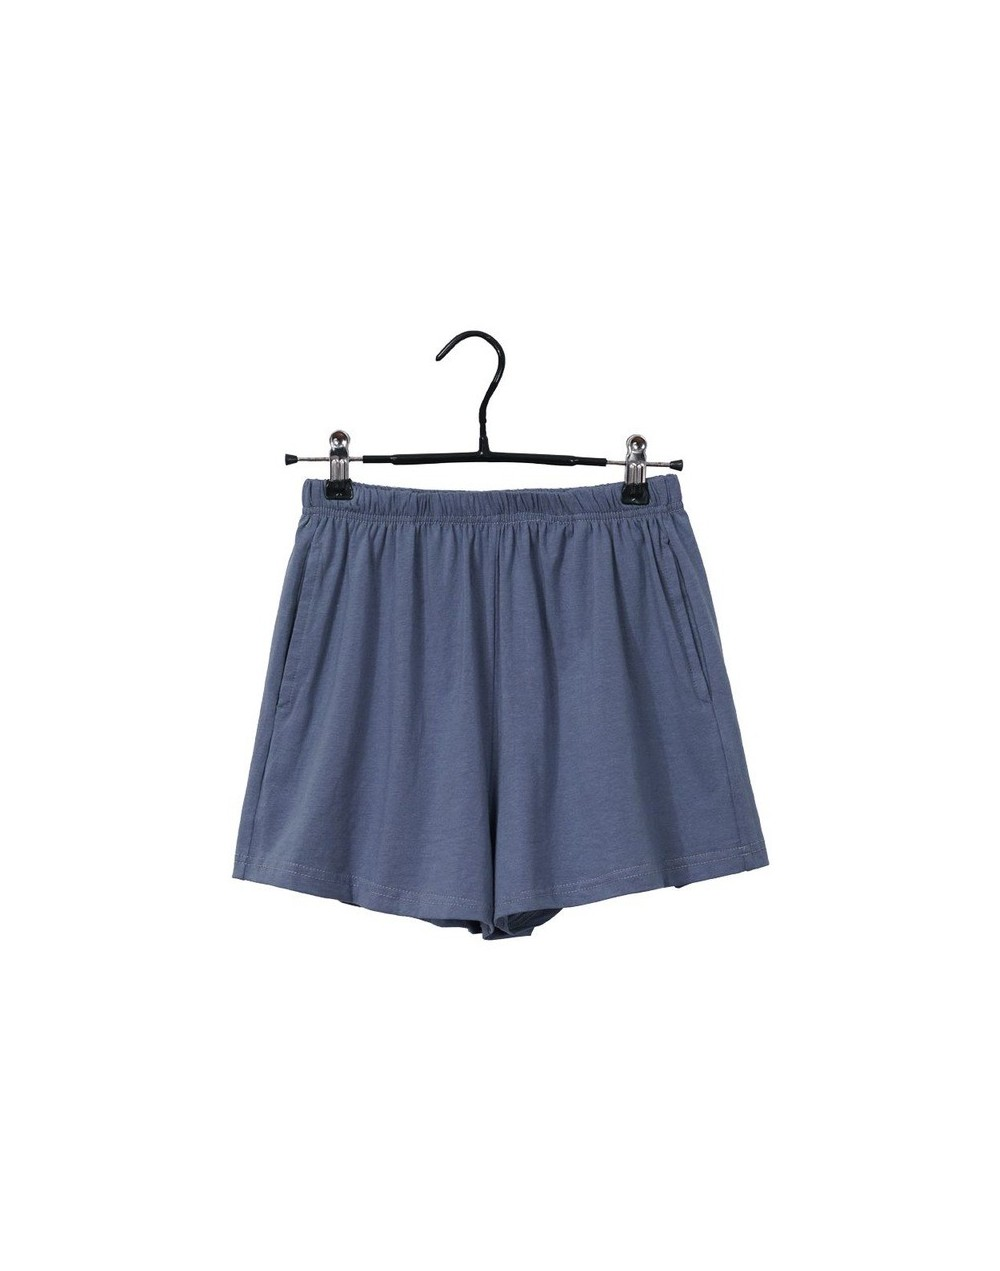 13 solid colors soft cotton spandex black blue casual running summer women pockets shorts workout wear plus size M30182 - 2 ...